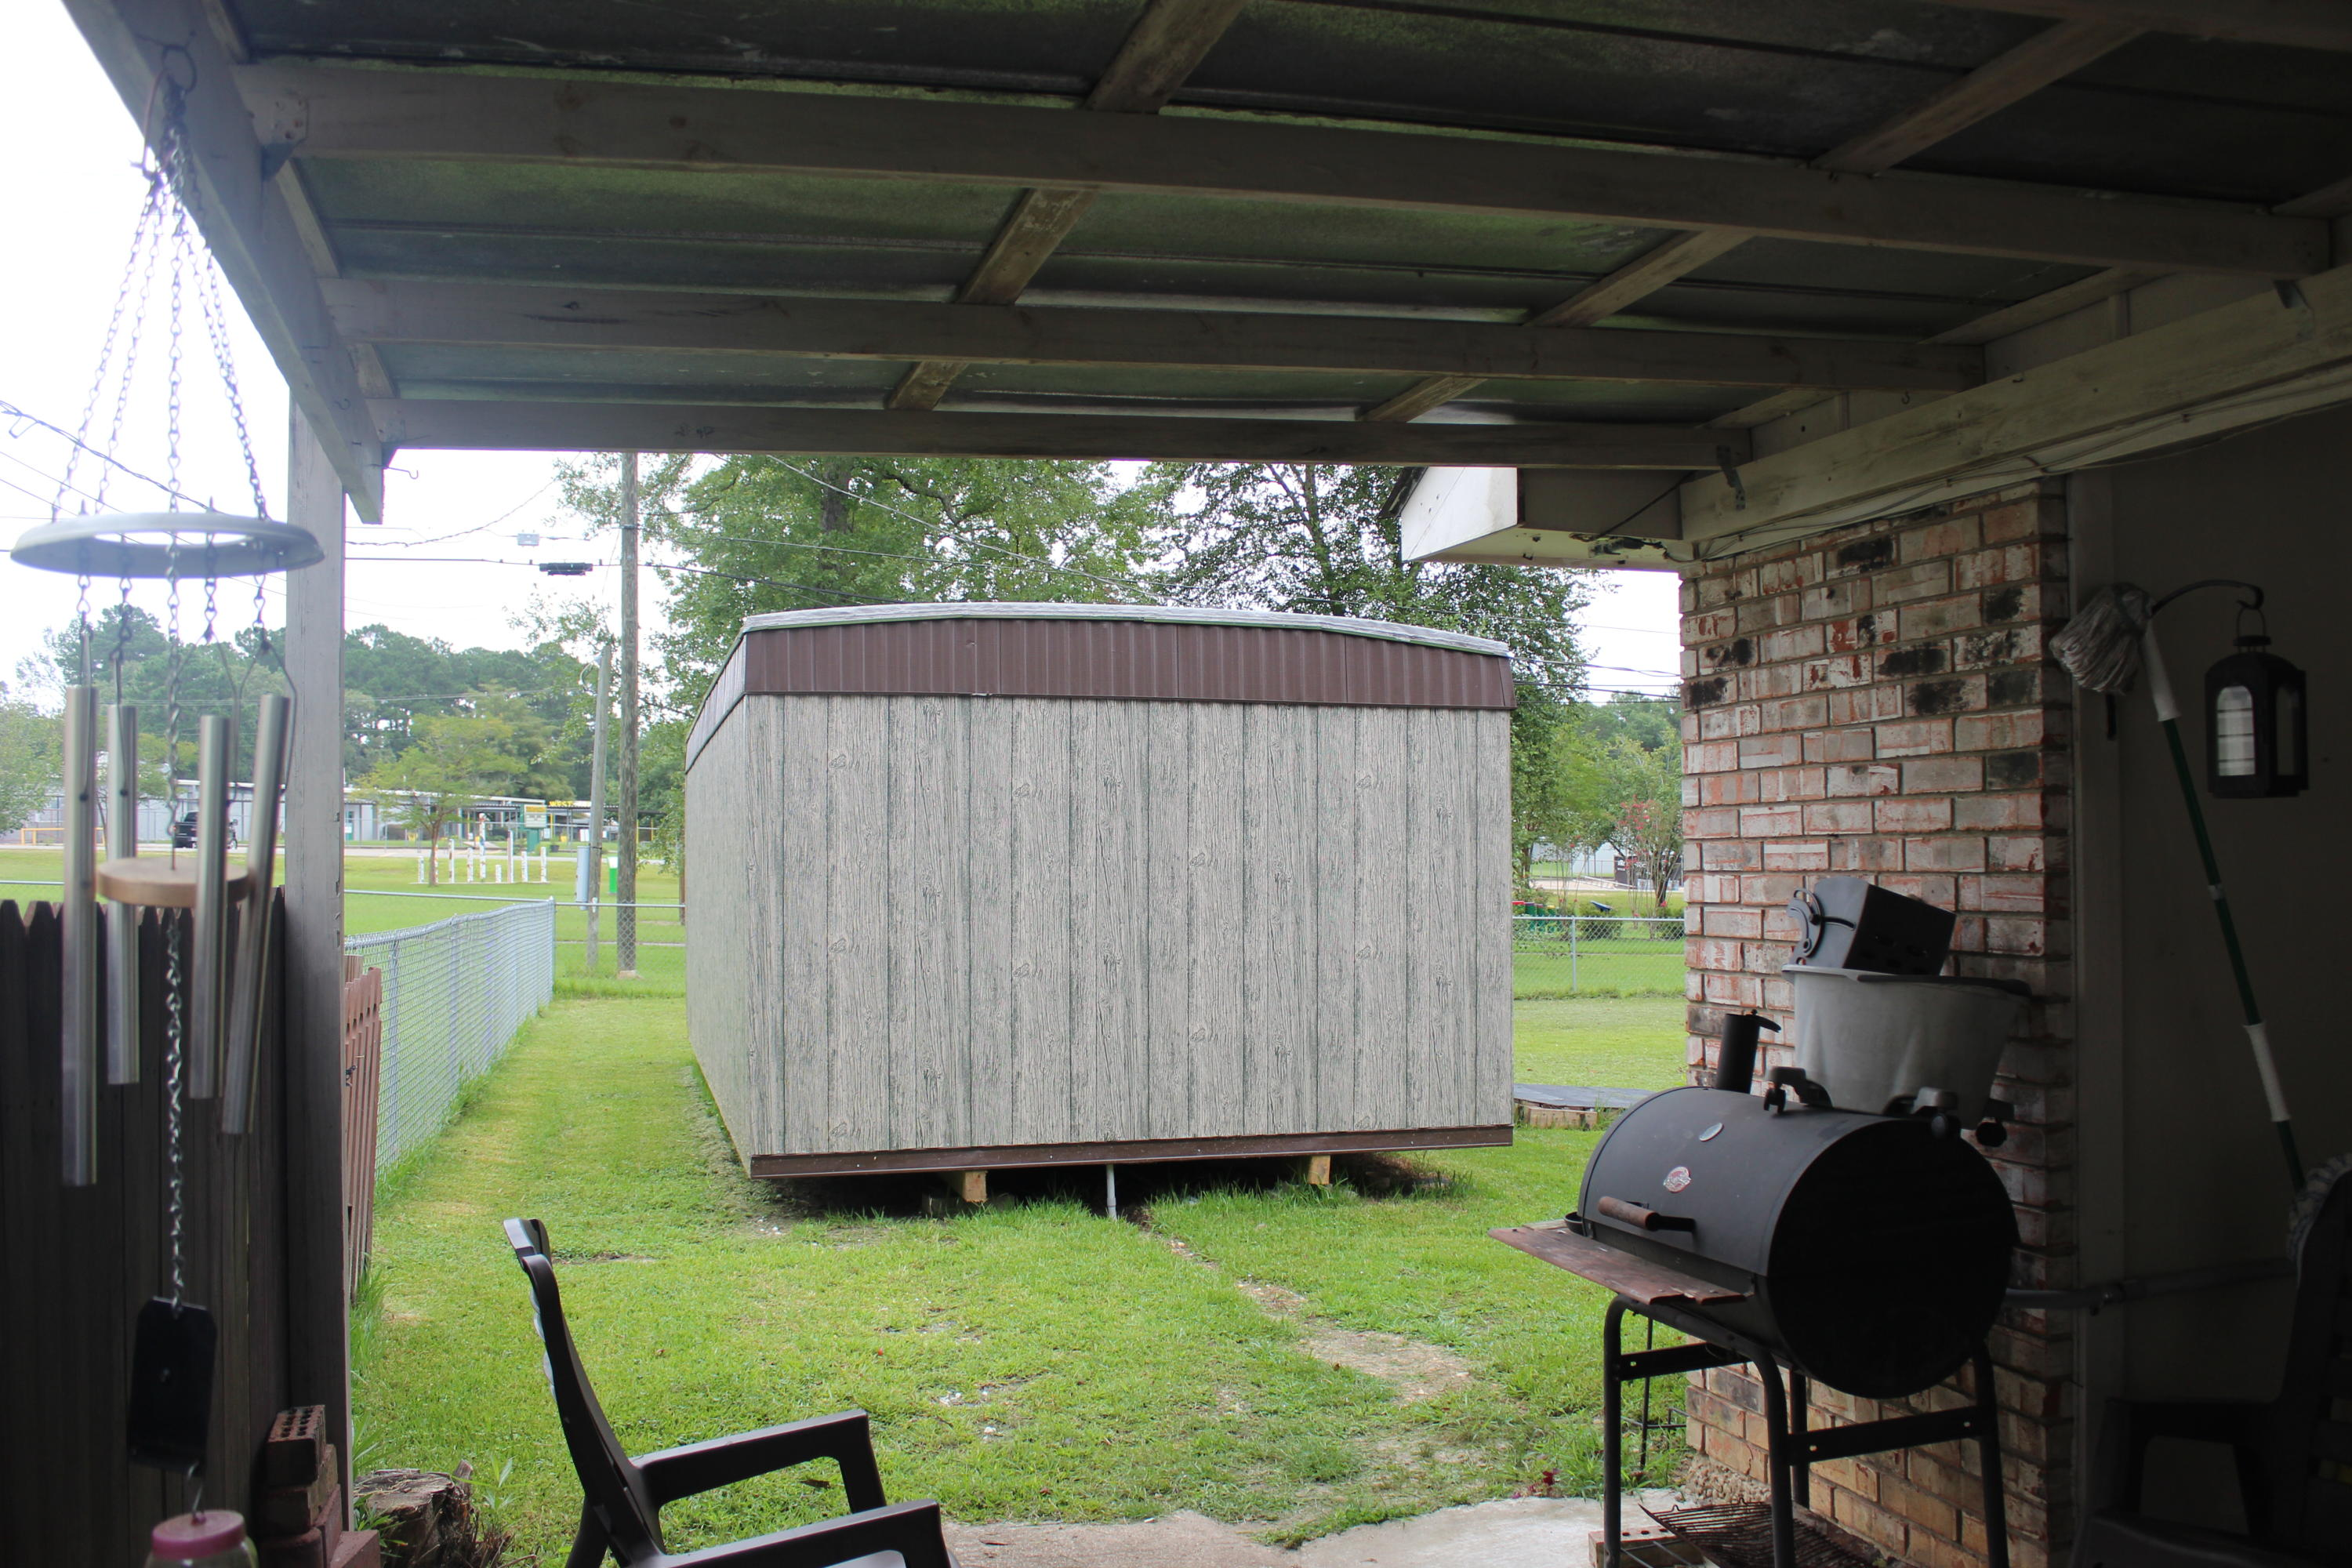 Leesville home for sale, 1103 John Paul Jones Ave, Leesville LA - $95,000